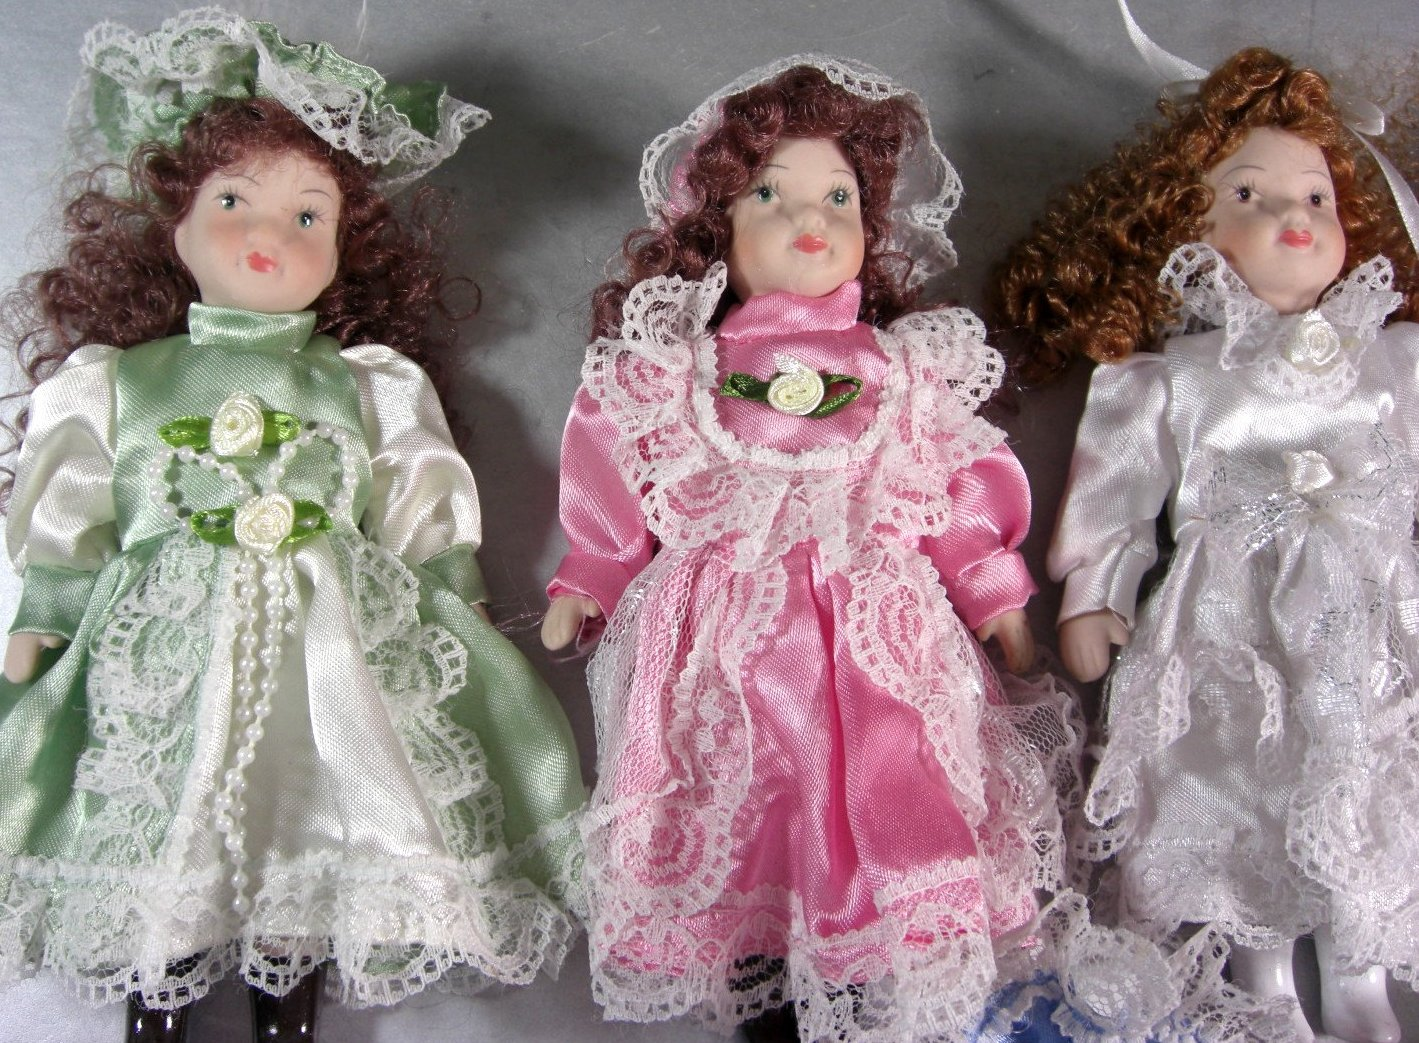 7 Miniature Porcelain Bisque Doll Lot / 7 Inches Tall / Lot